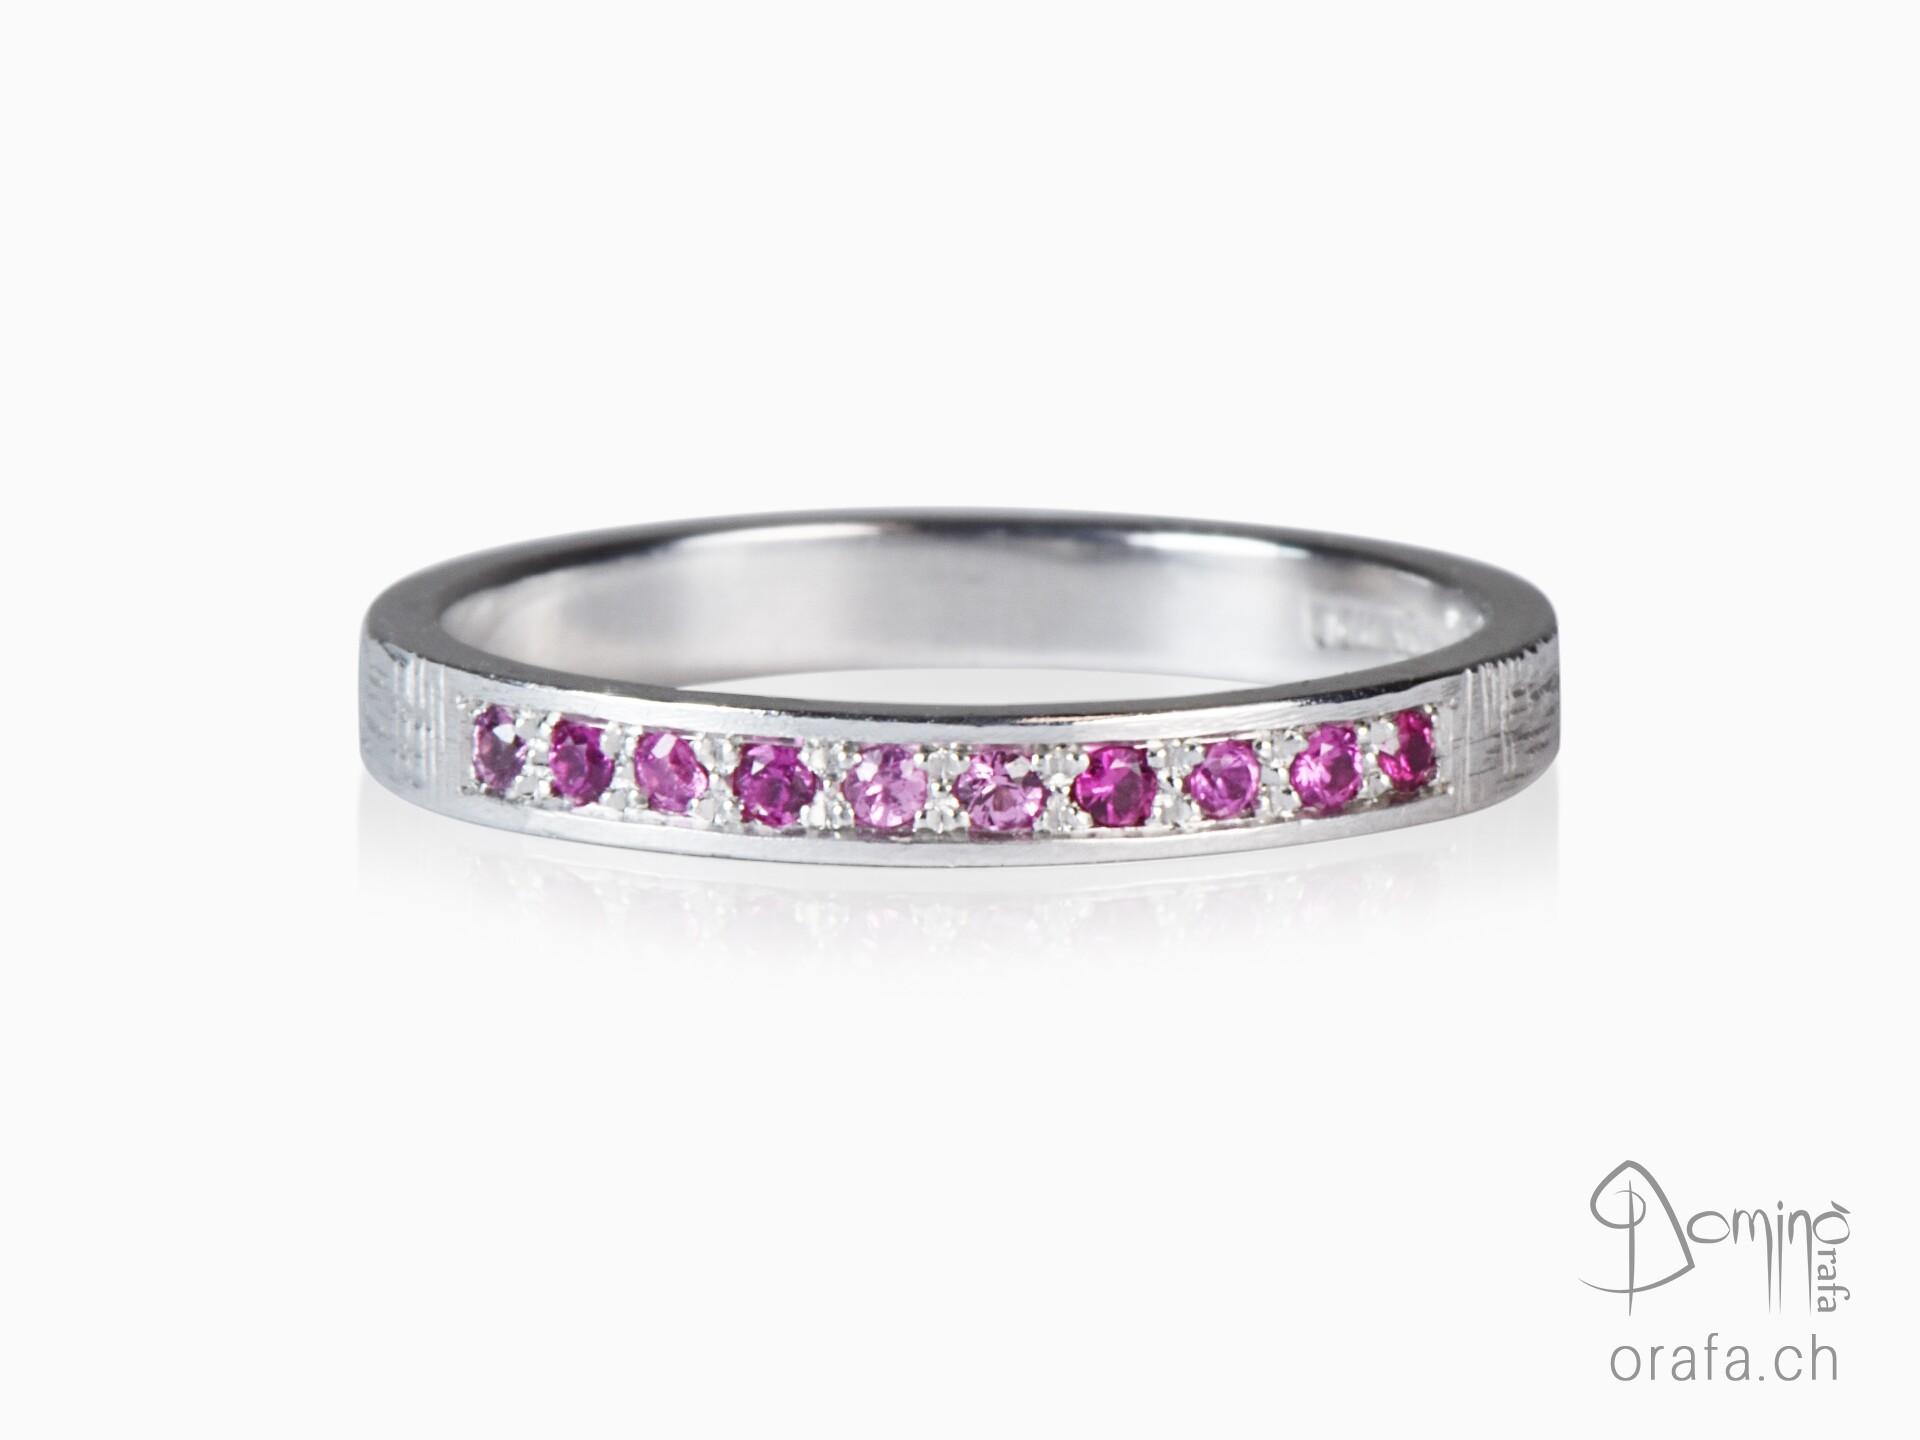 Ring with 10 pink sapphires